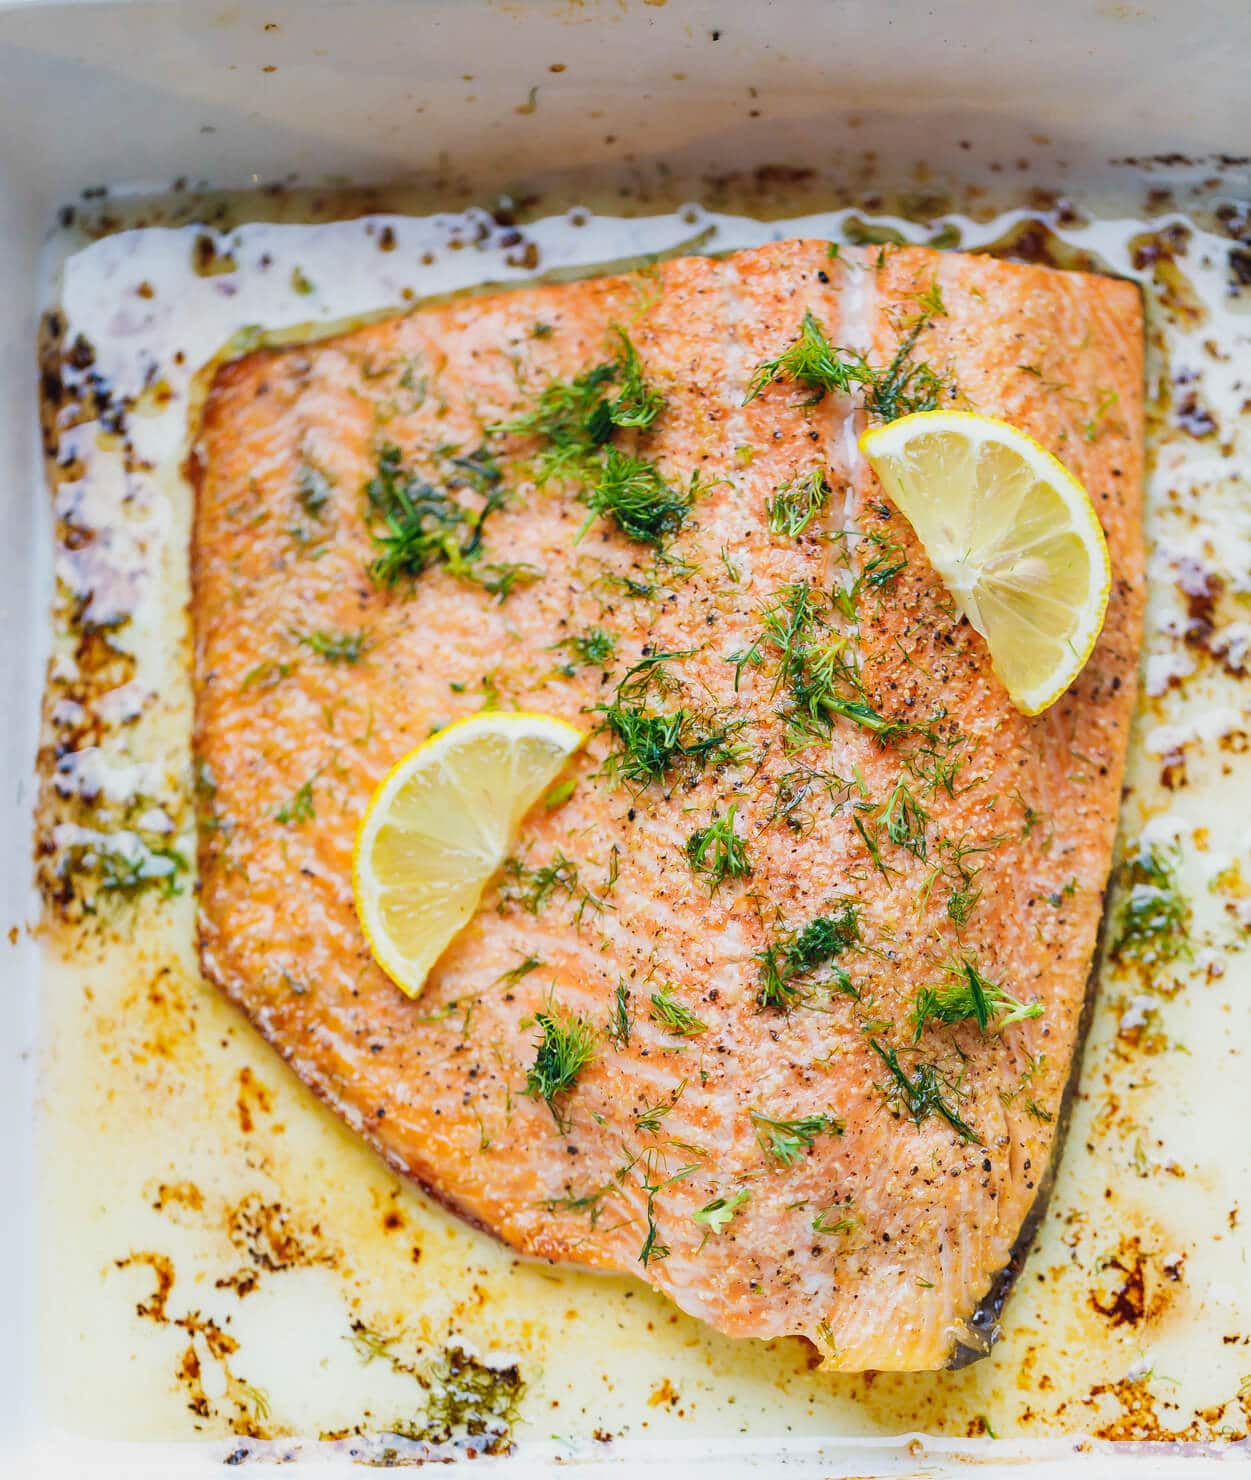 Easy One Pan Garlic Dill Lemon Baked Salmon Recipe - ready in under 30 minutes, simple and delicious sheet pan dinner that could be paired with a salad or roasted veggies for the perfect effortless nutritious meal. All you need are seven staple ingredients. #bakedsalmon #salmonrecipes #salmondinner #ketodinner #garlicsalmon